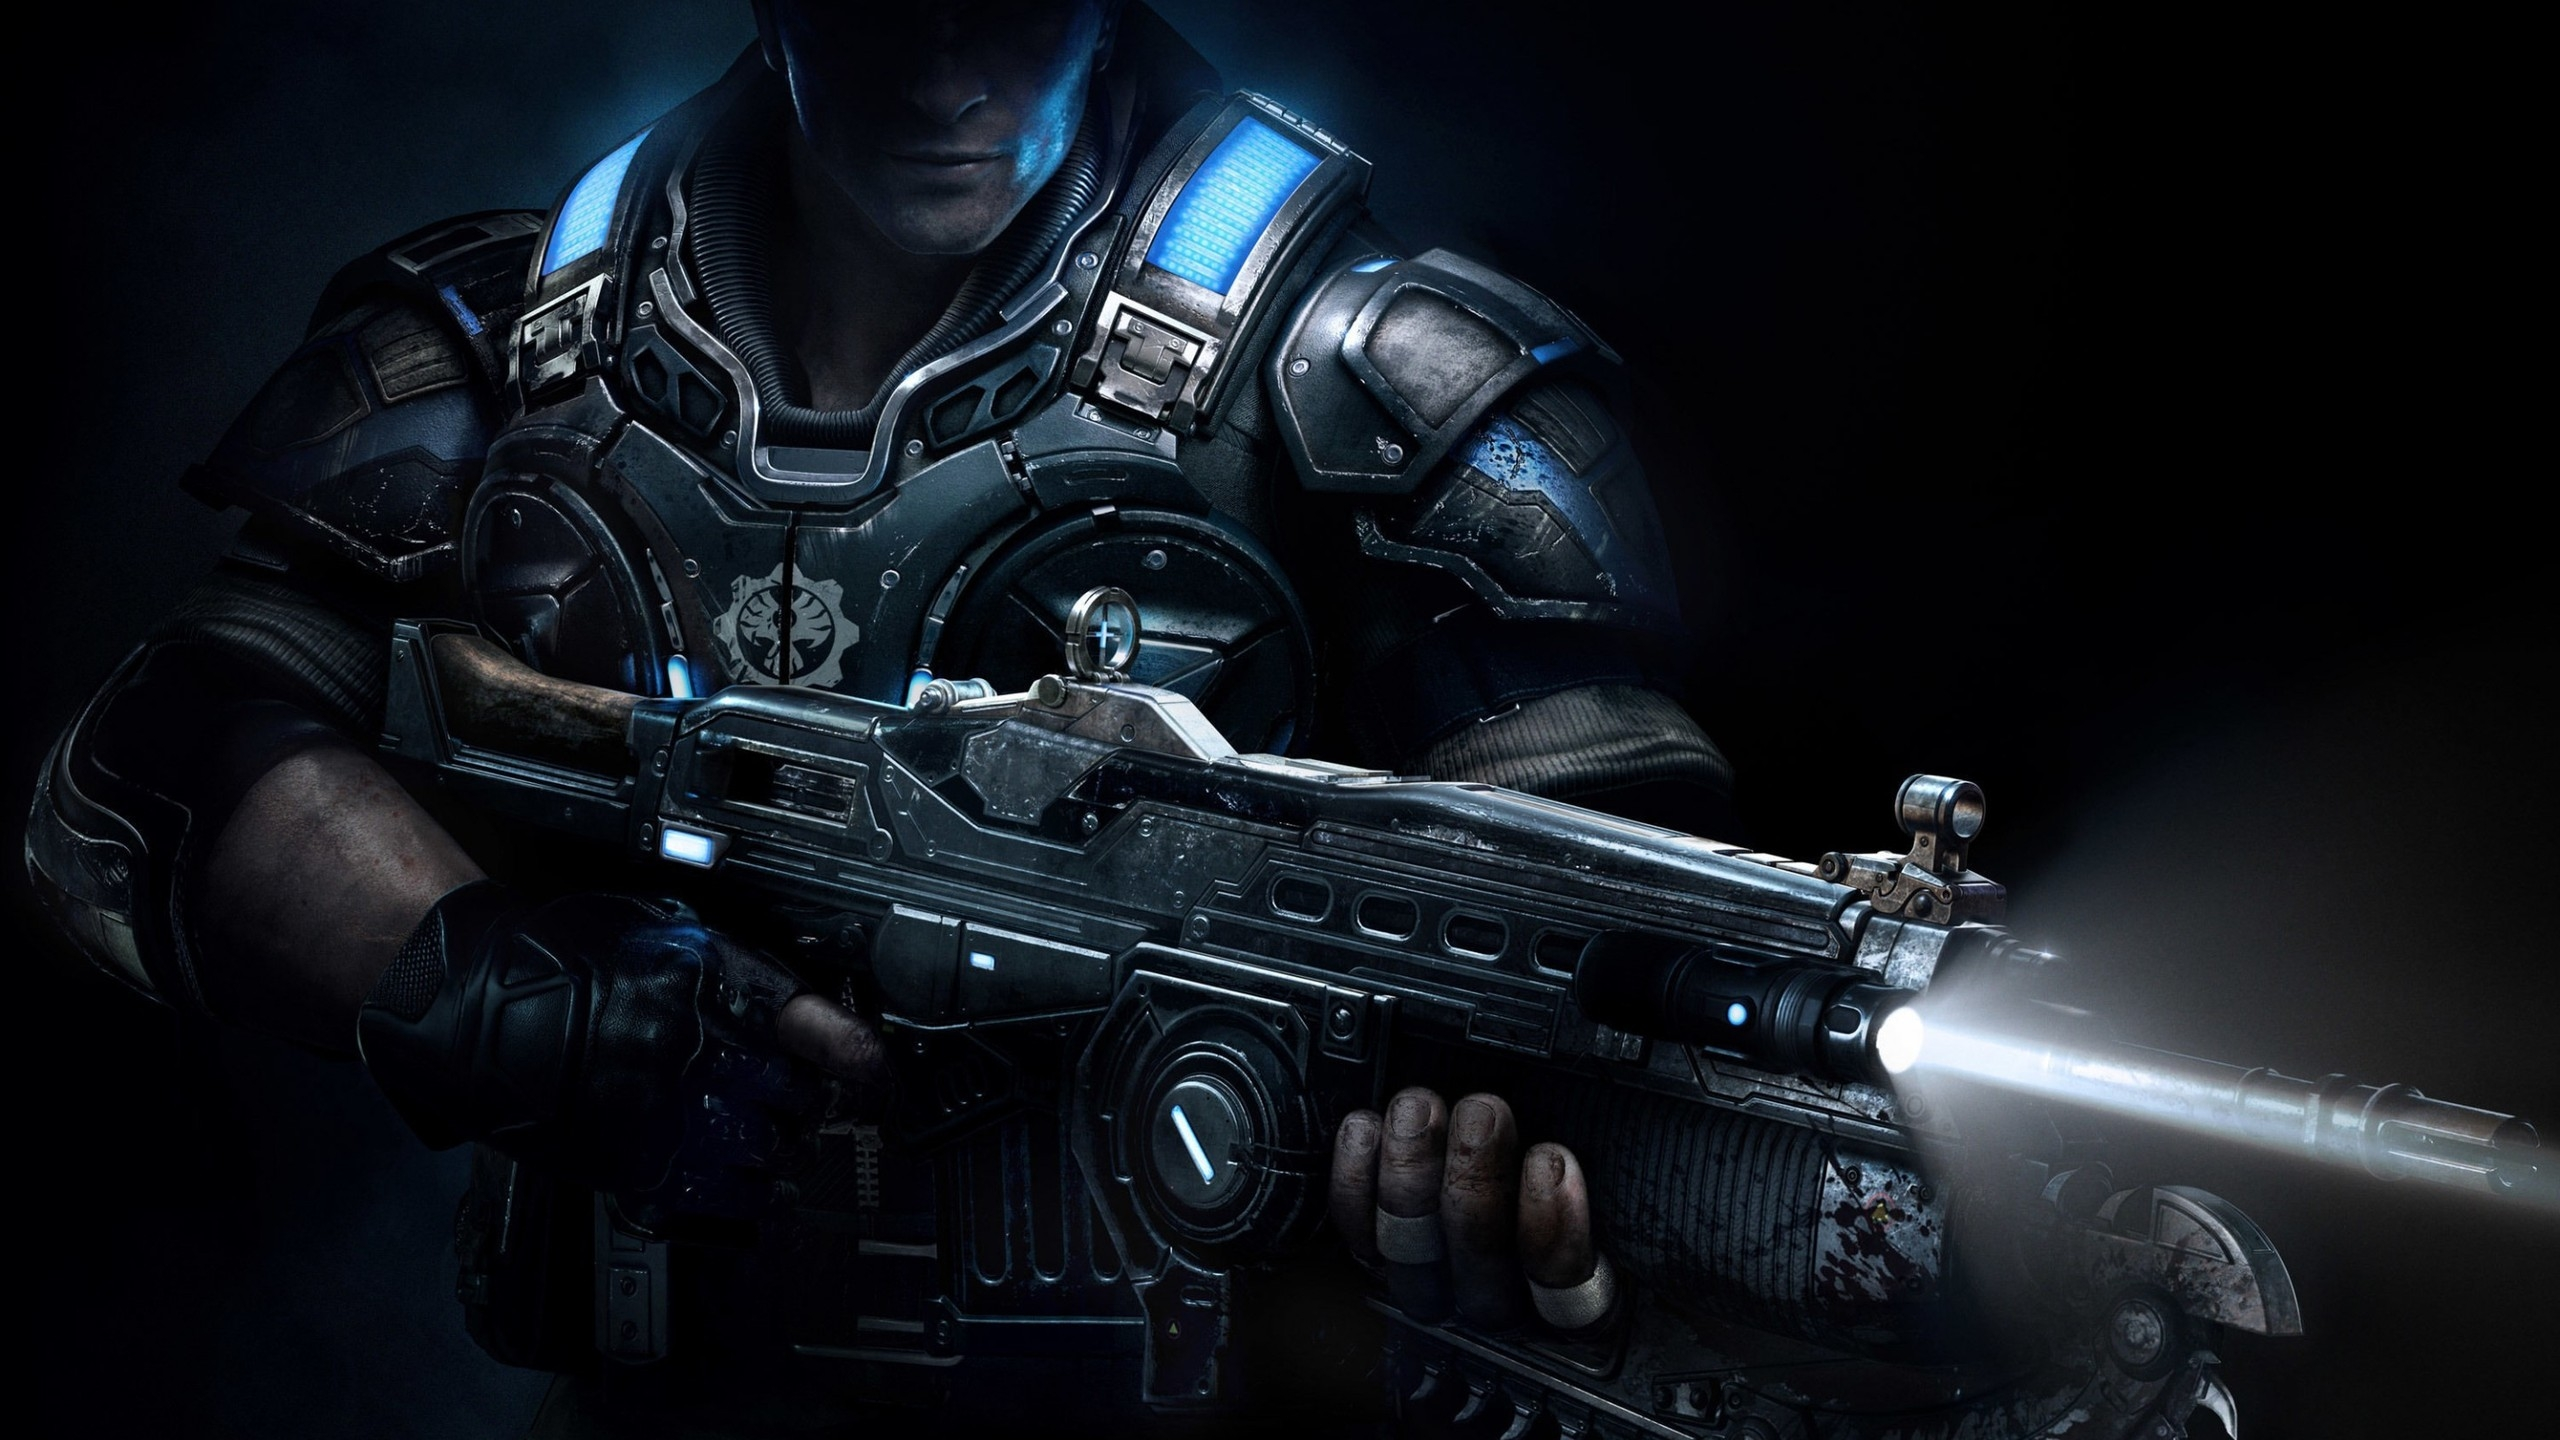 Gears of War 4 Poster for 2560x1440 HDTV resolution